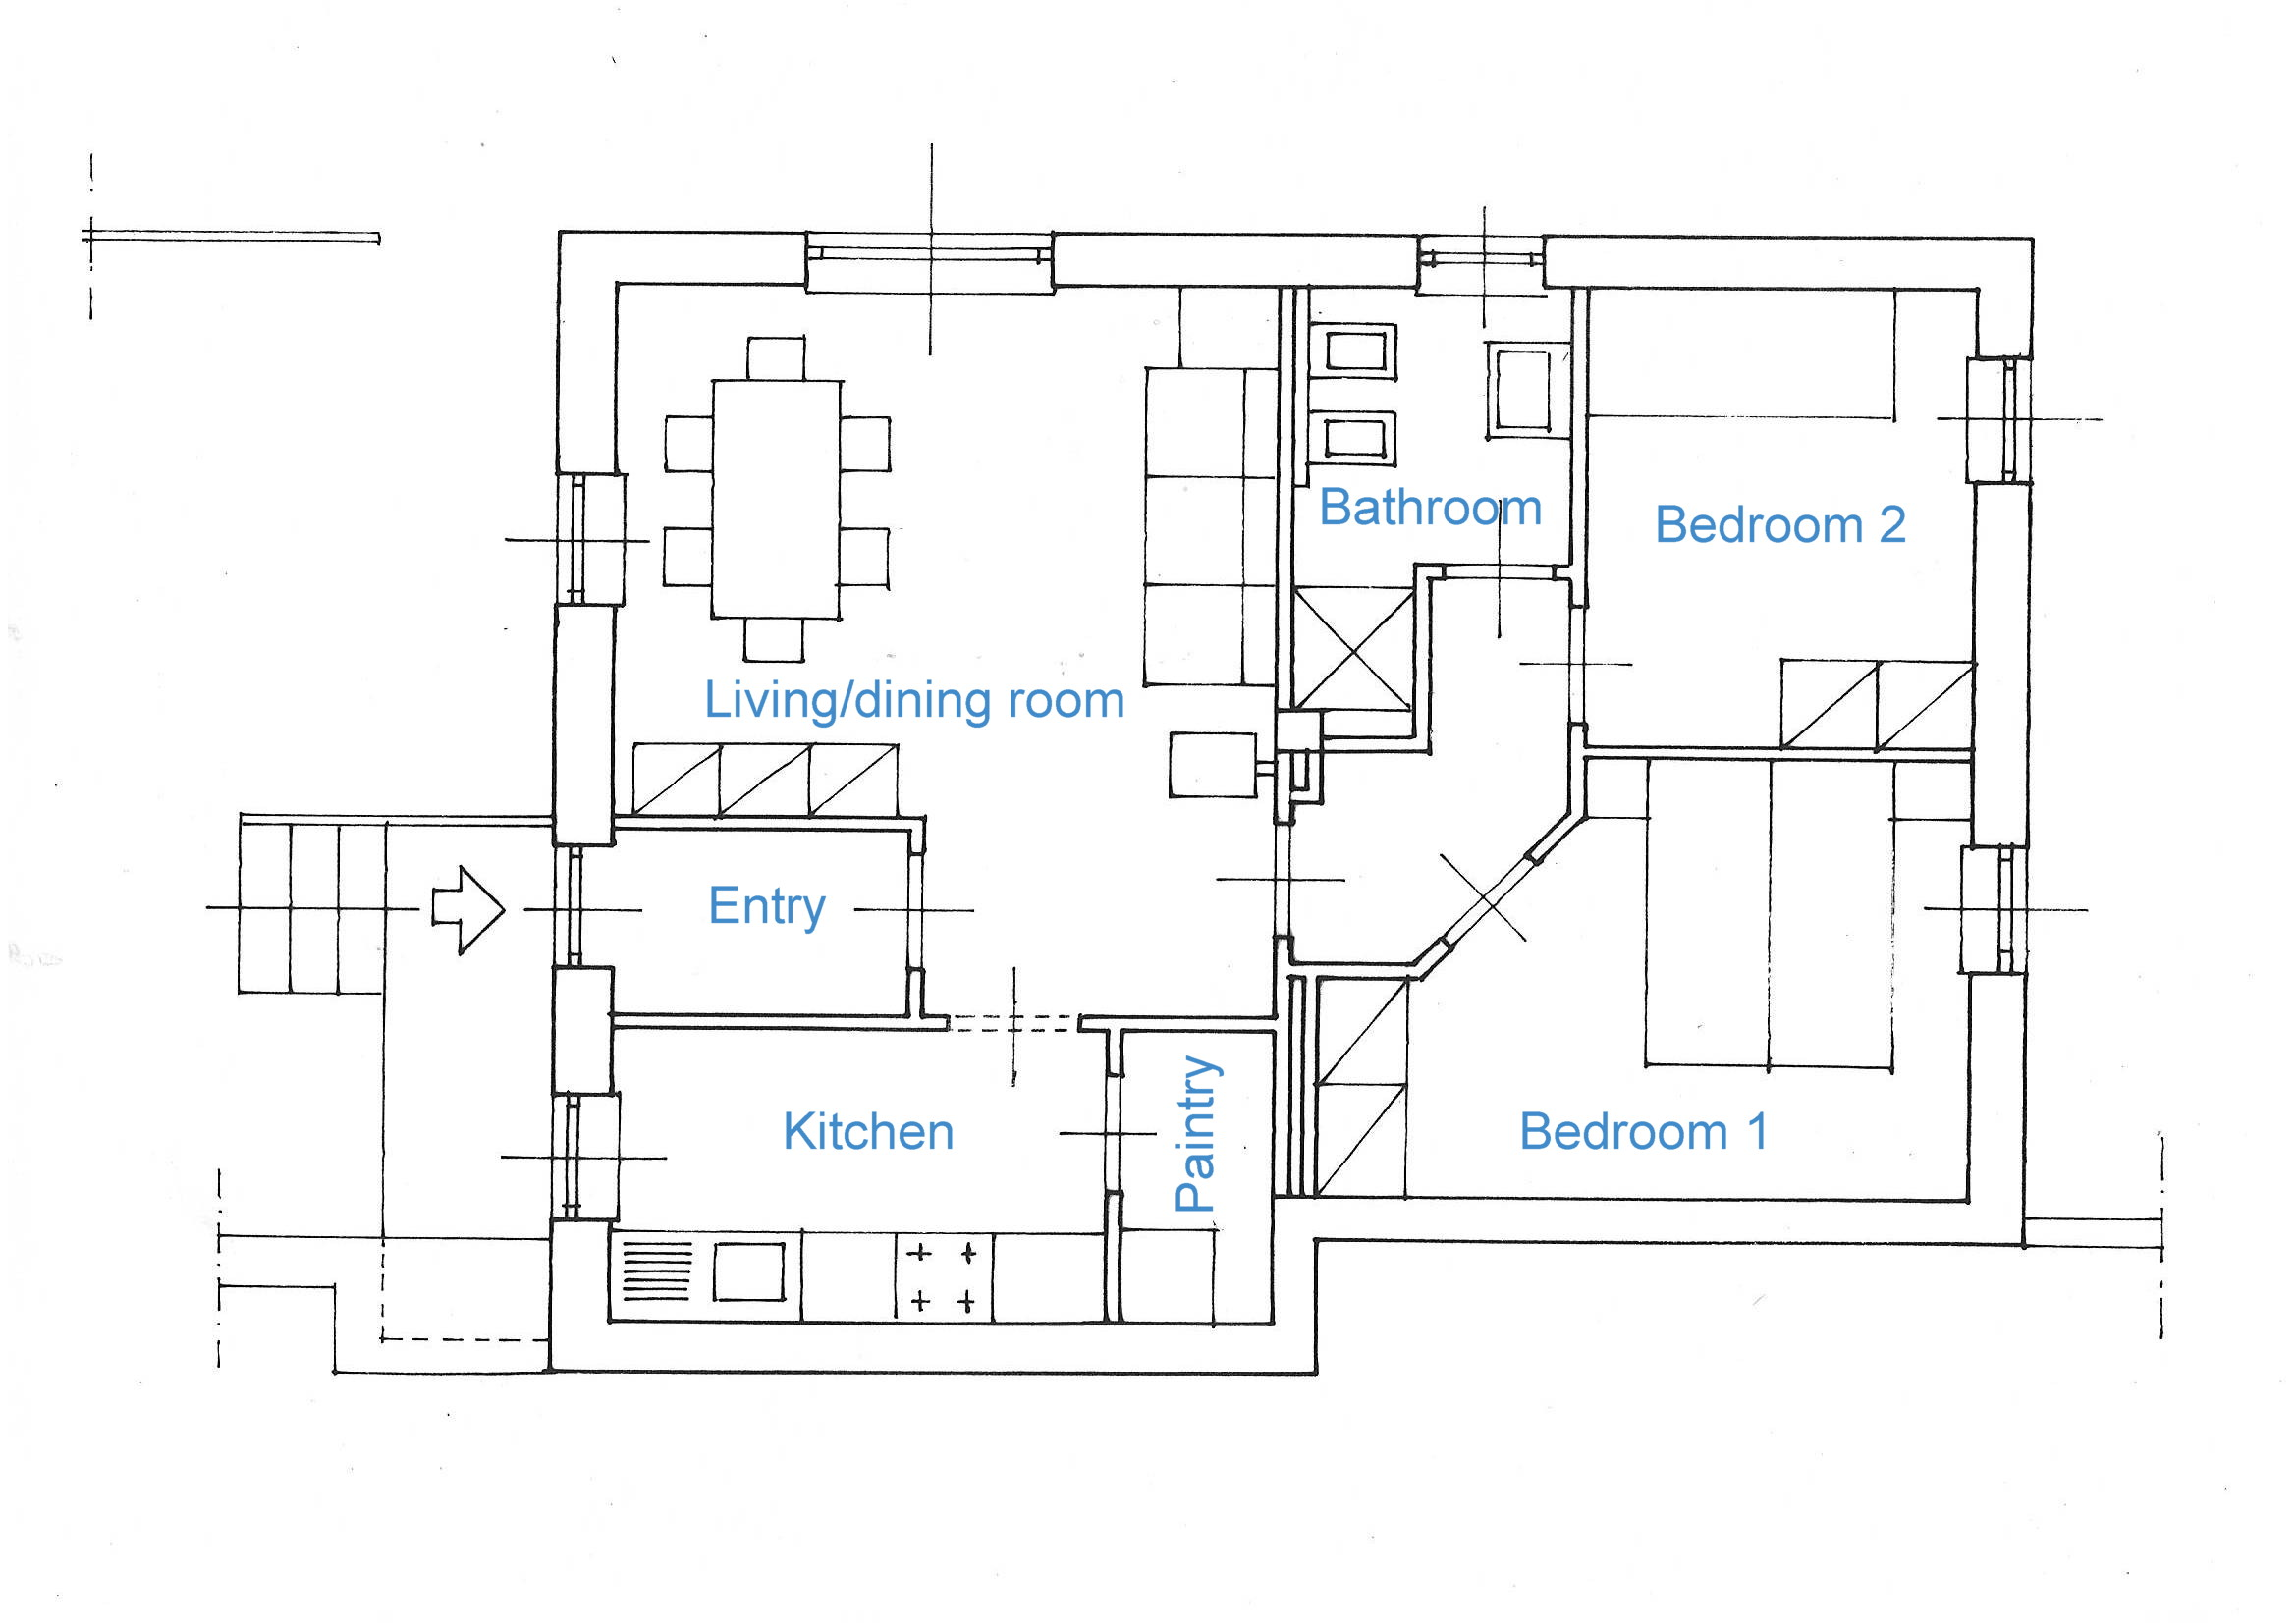 Apartment's map